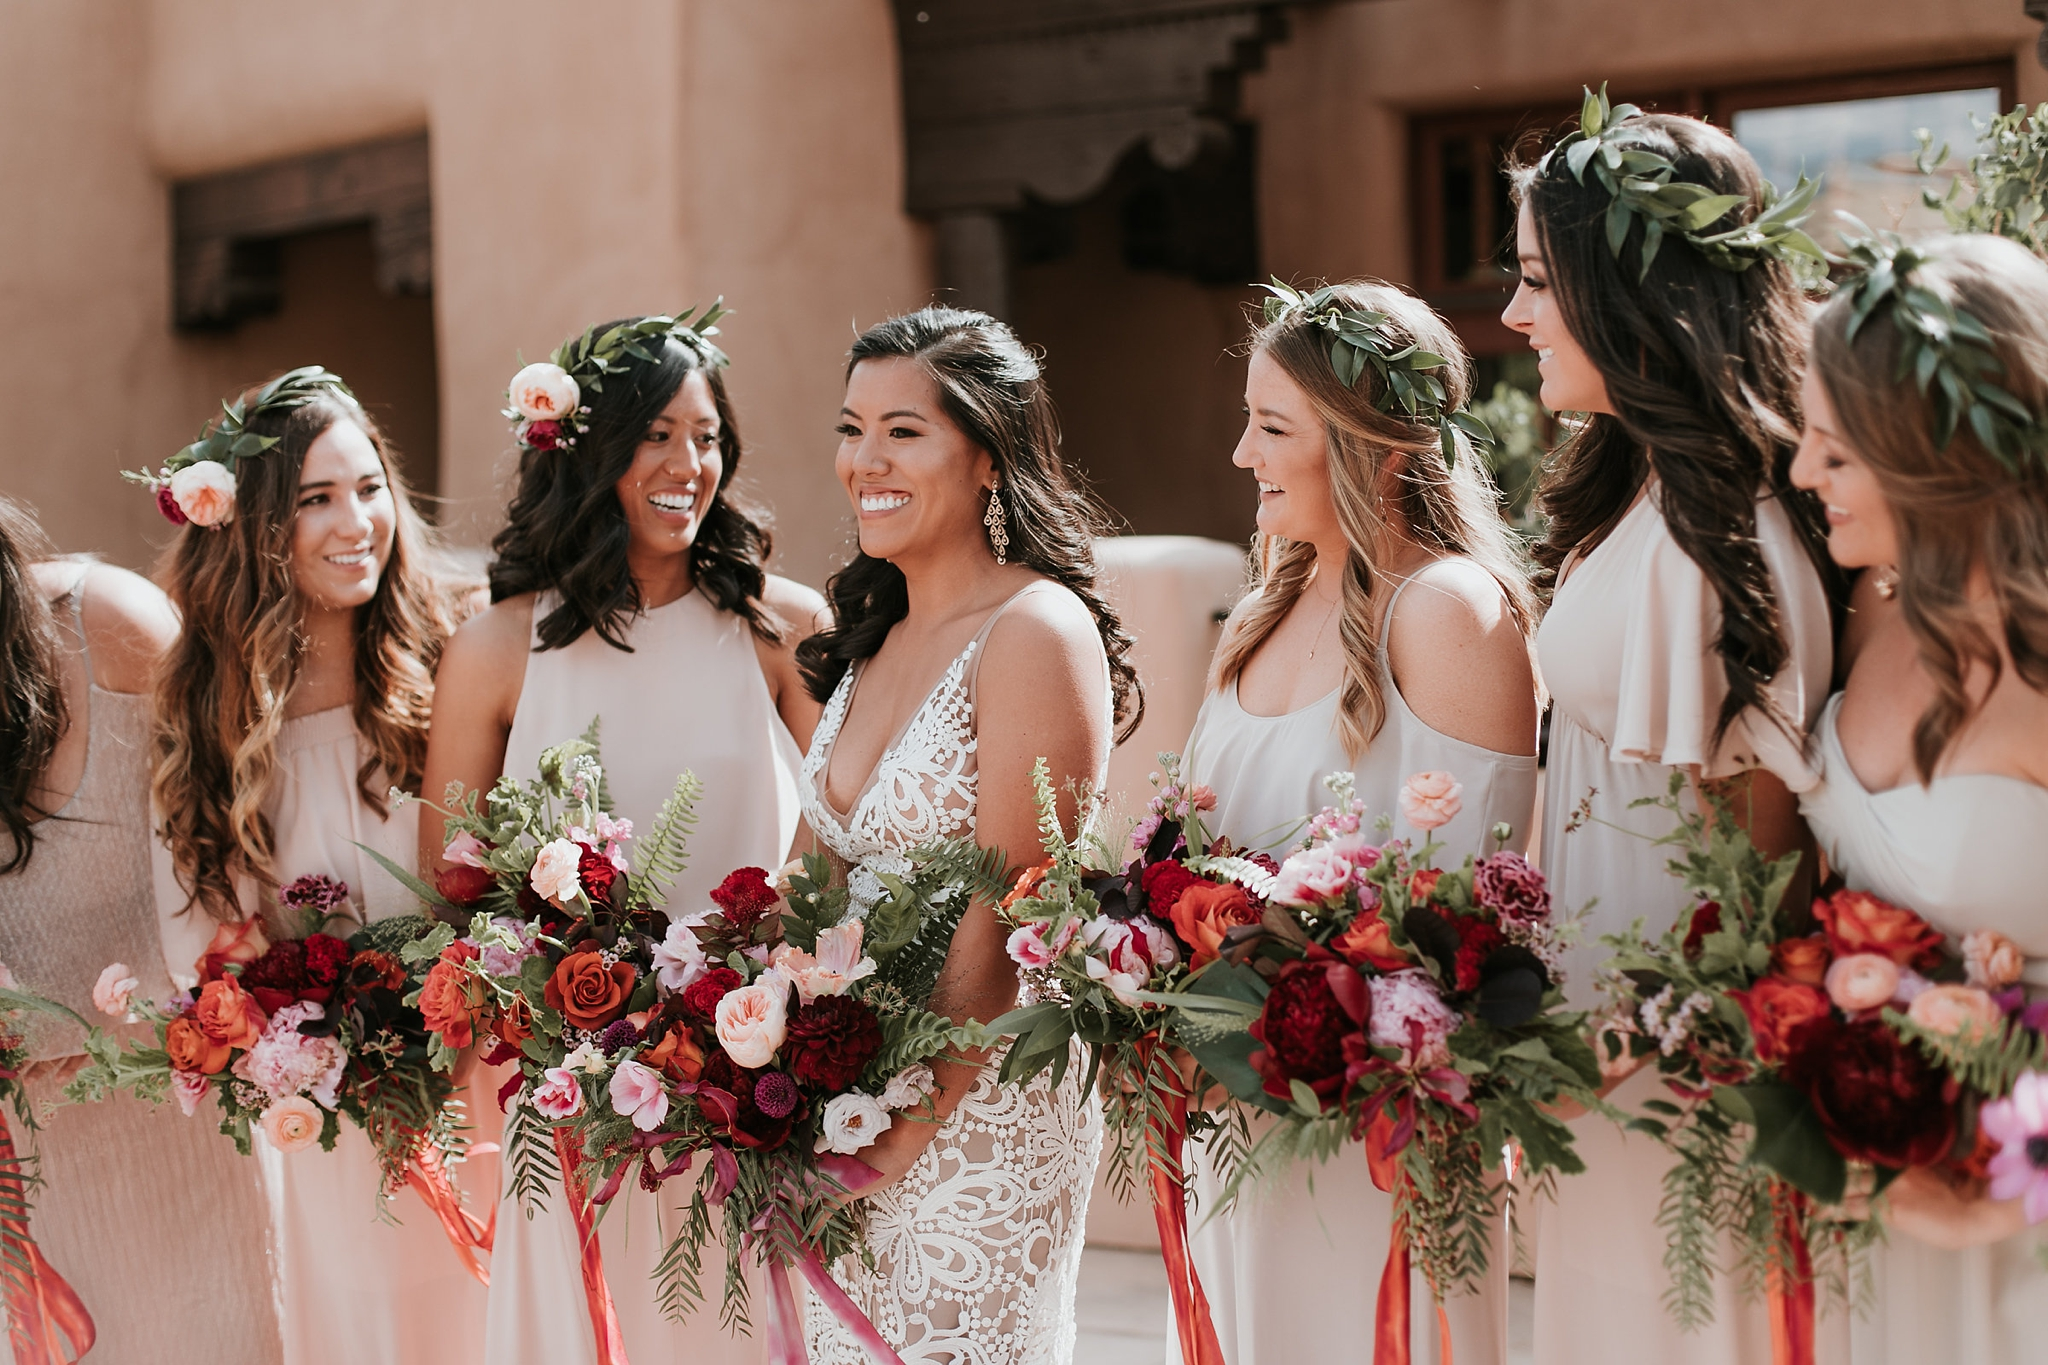 Alicia+lucia+photography+-+albuquerque+wedding+photographer+-+santa+fe+wedding+photography+-+new+mexico+wedding+photographer+-+new+mexico+wedding+-+new+mexico+wedding+-+colorado+wedding+-+bridesmaids+-+bridesmaid+style_0043.jpg